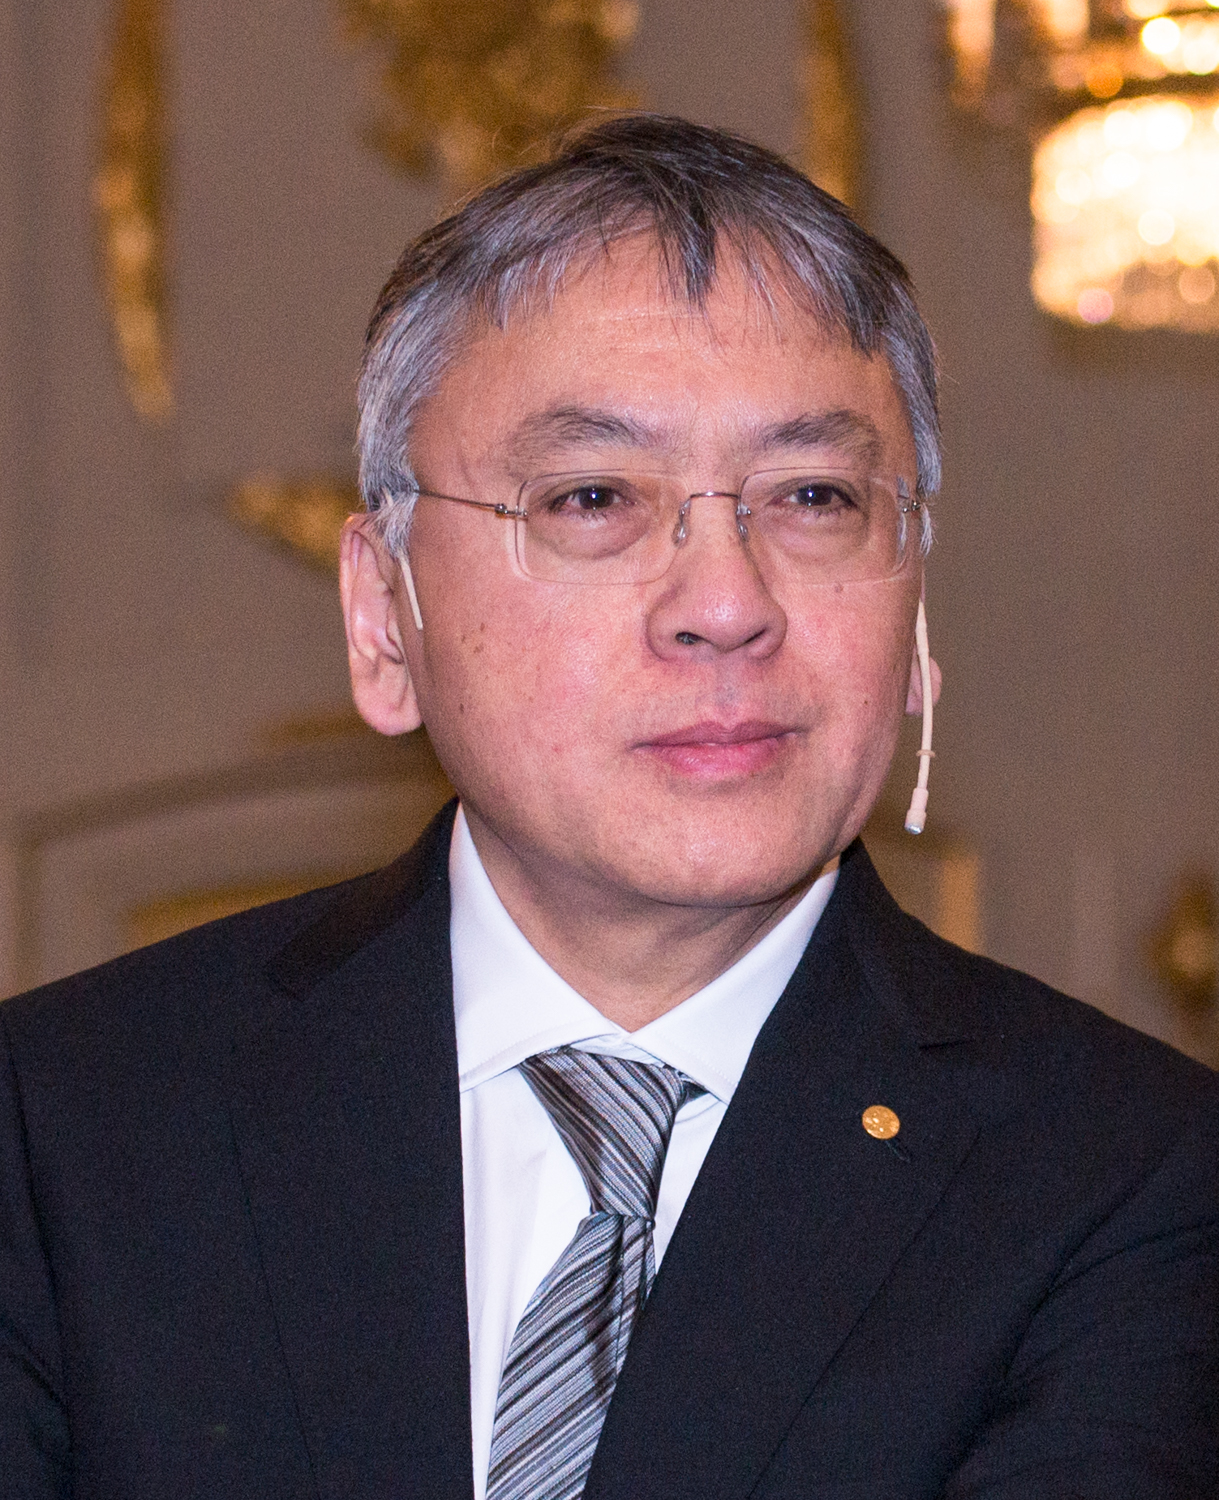 Ishiguro in Stockholm in December 2017